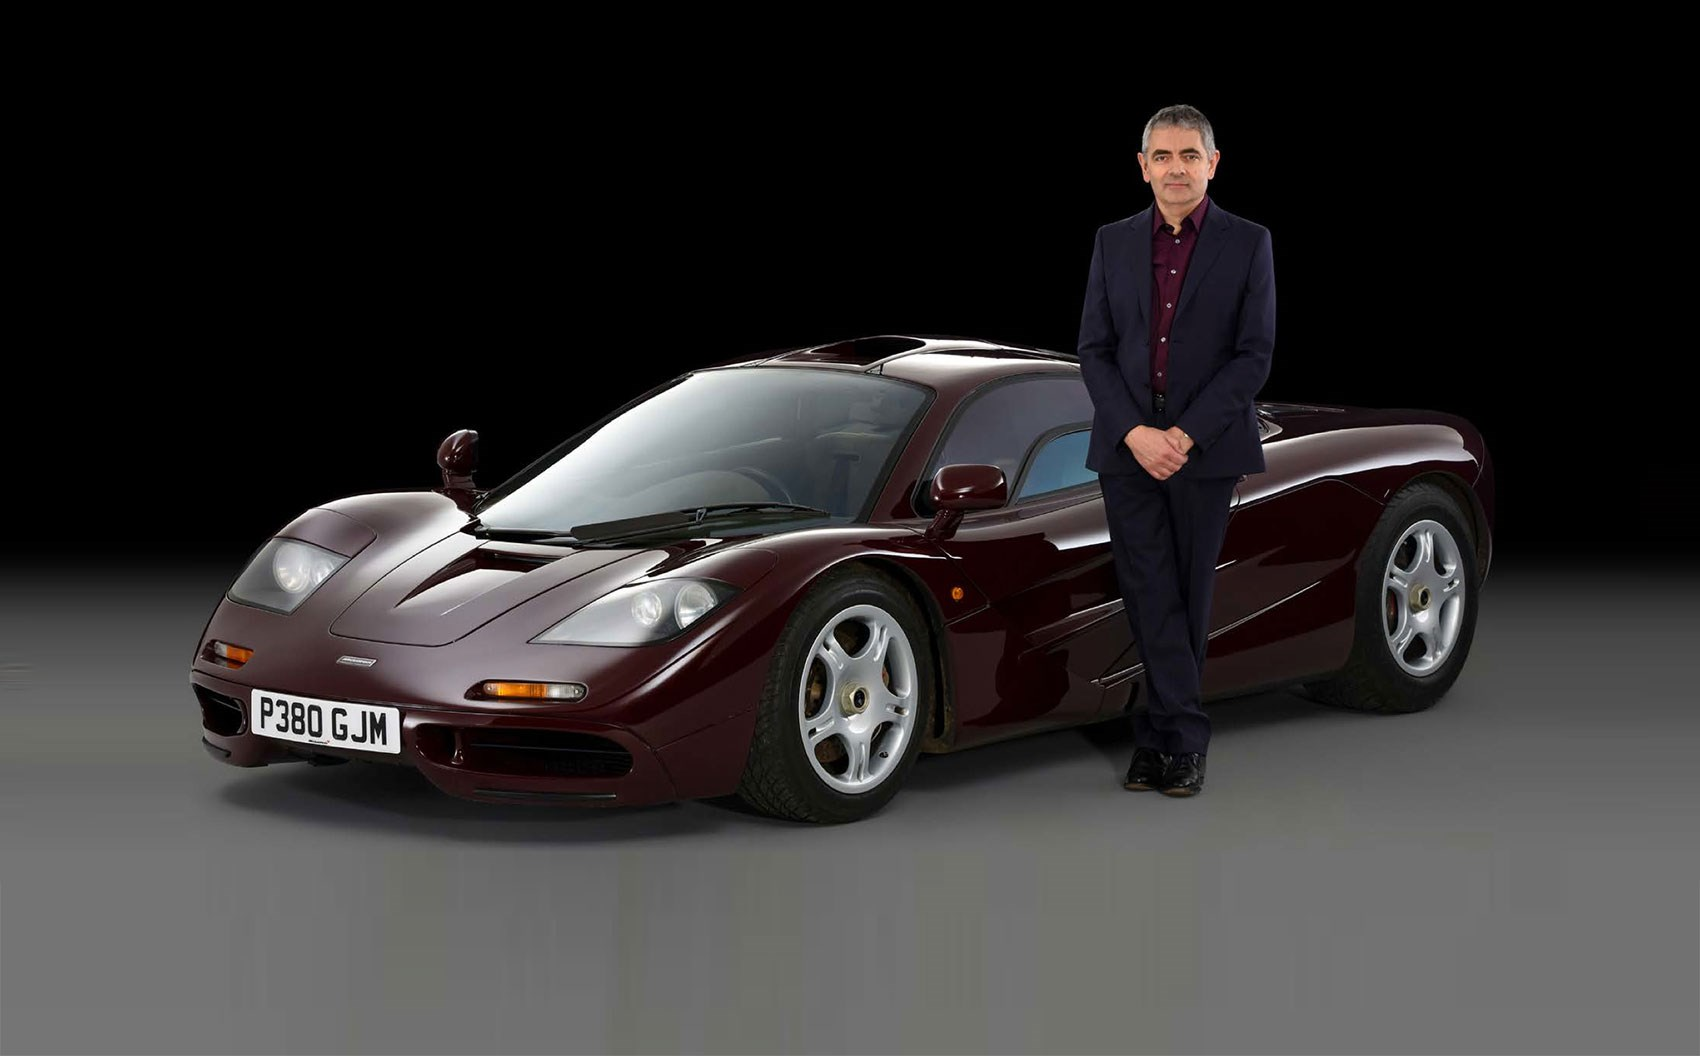 Rowan Atkinson S Mclaren From Twice Crashed Mess To Icon